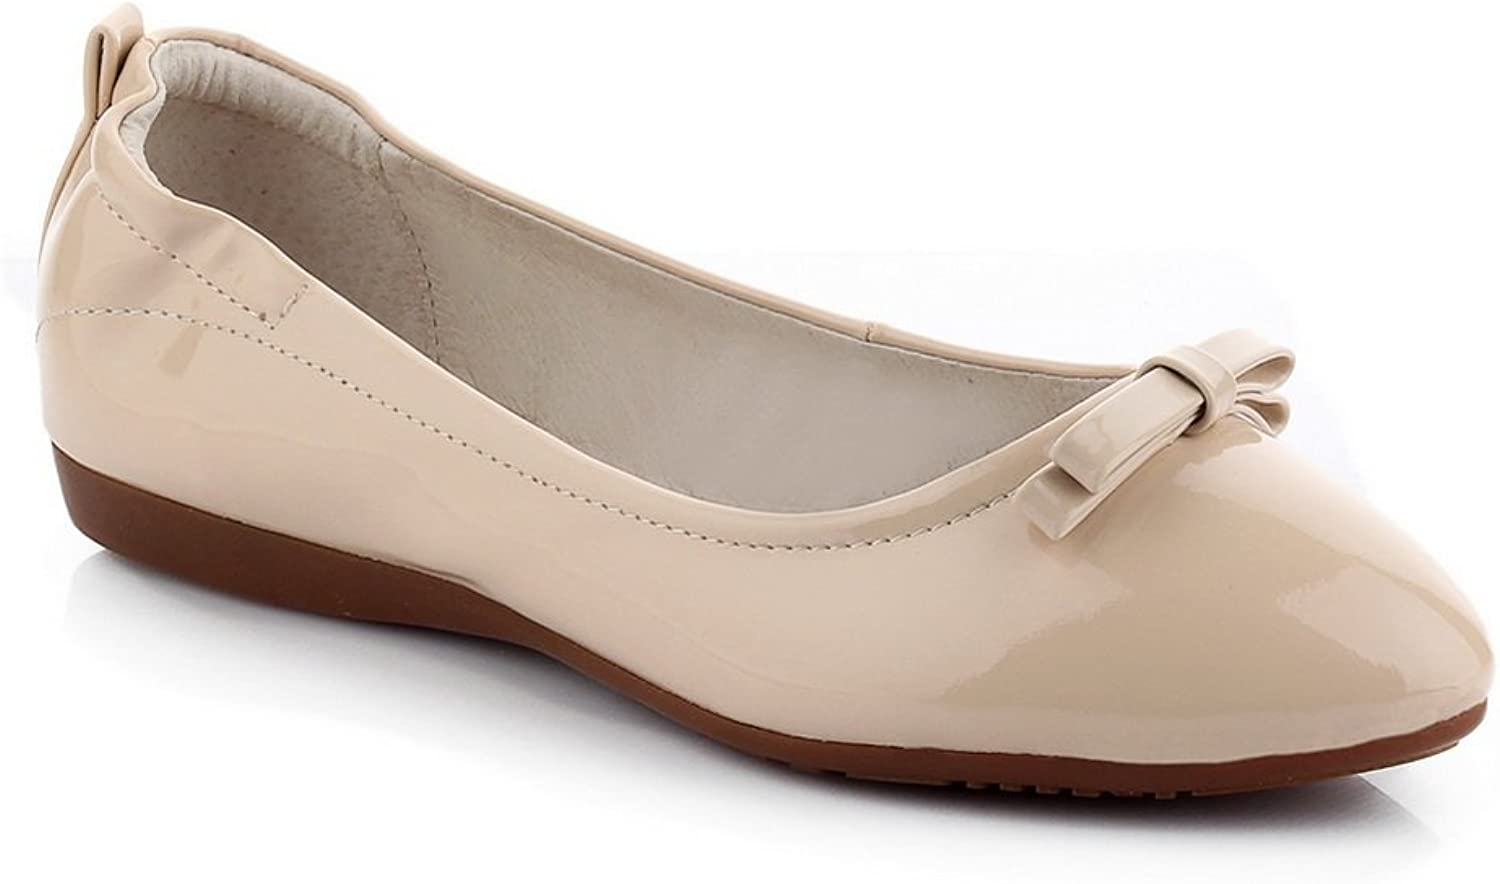 AdeeSu Womens Bows Pull-On Solid Urethane Flats-shoes